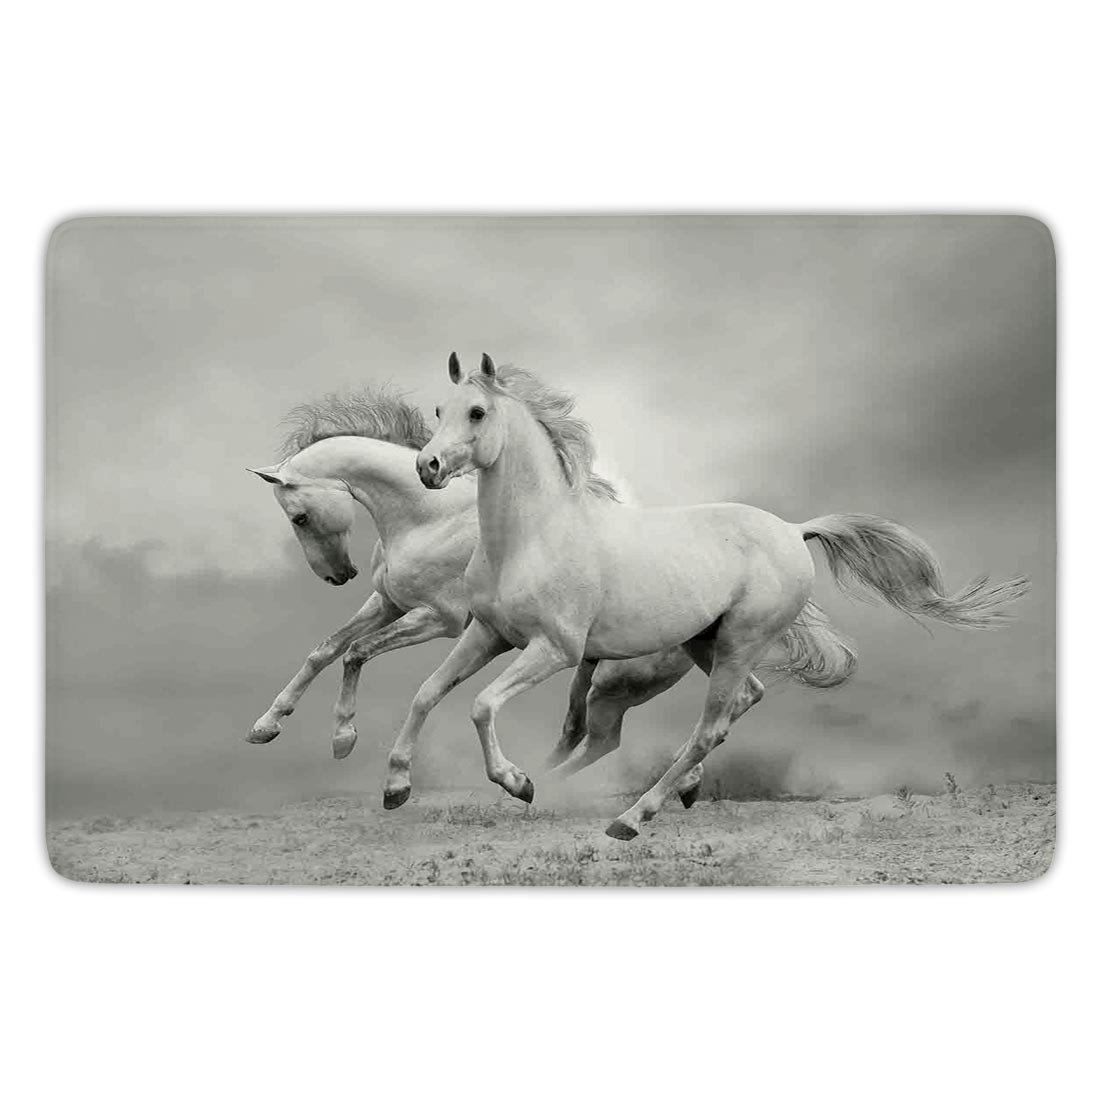 Bathroom Bath Rug Kitchen Floor Mat Carpet,Animal Decor,Running Horses Symbolize Passion and Appetite for Freedom Spiritual Creatures Photo,Black and White,Flannel Microfiber Non-slip Soft Absorbent